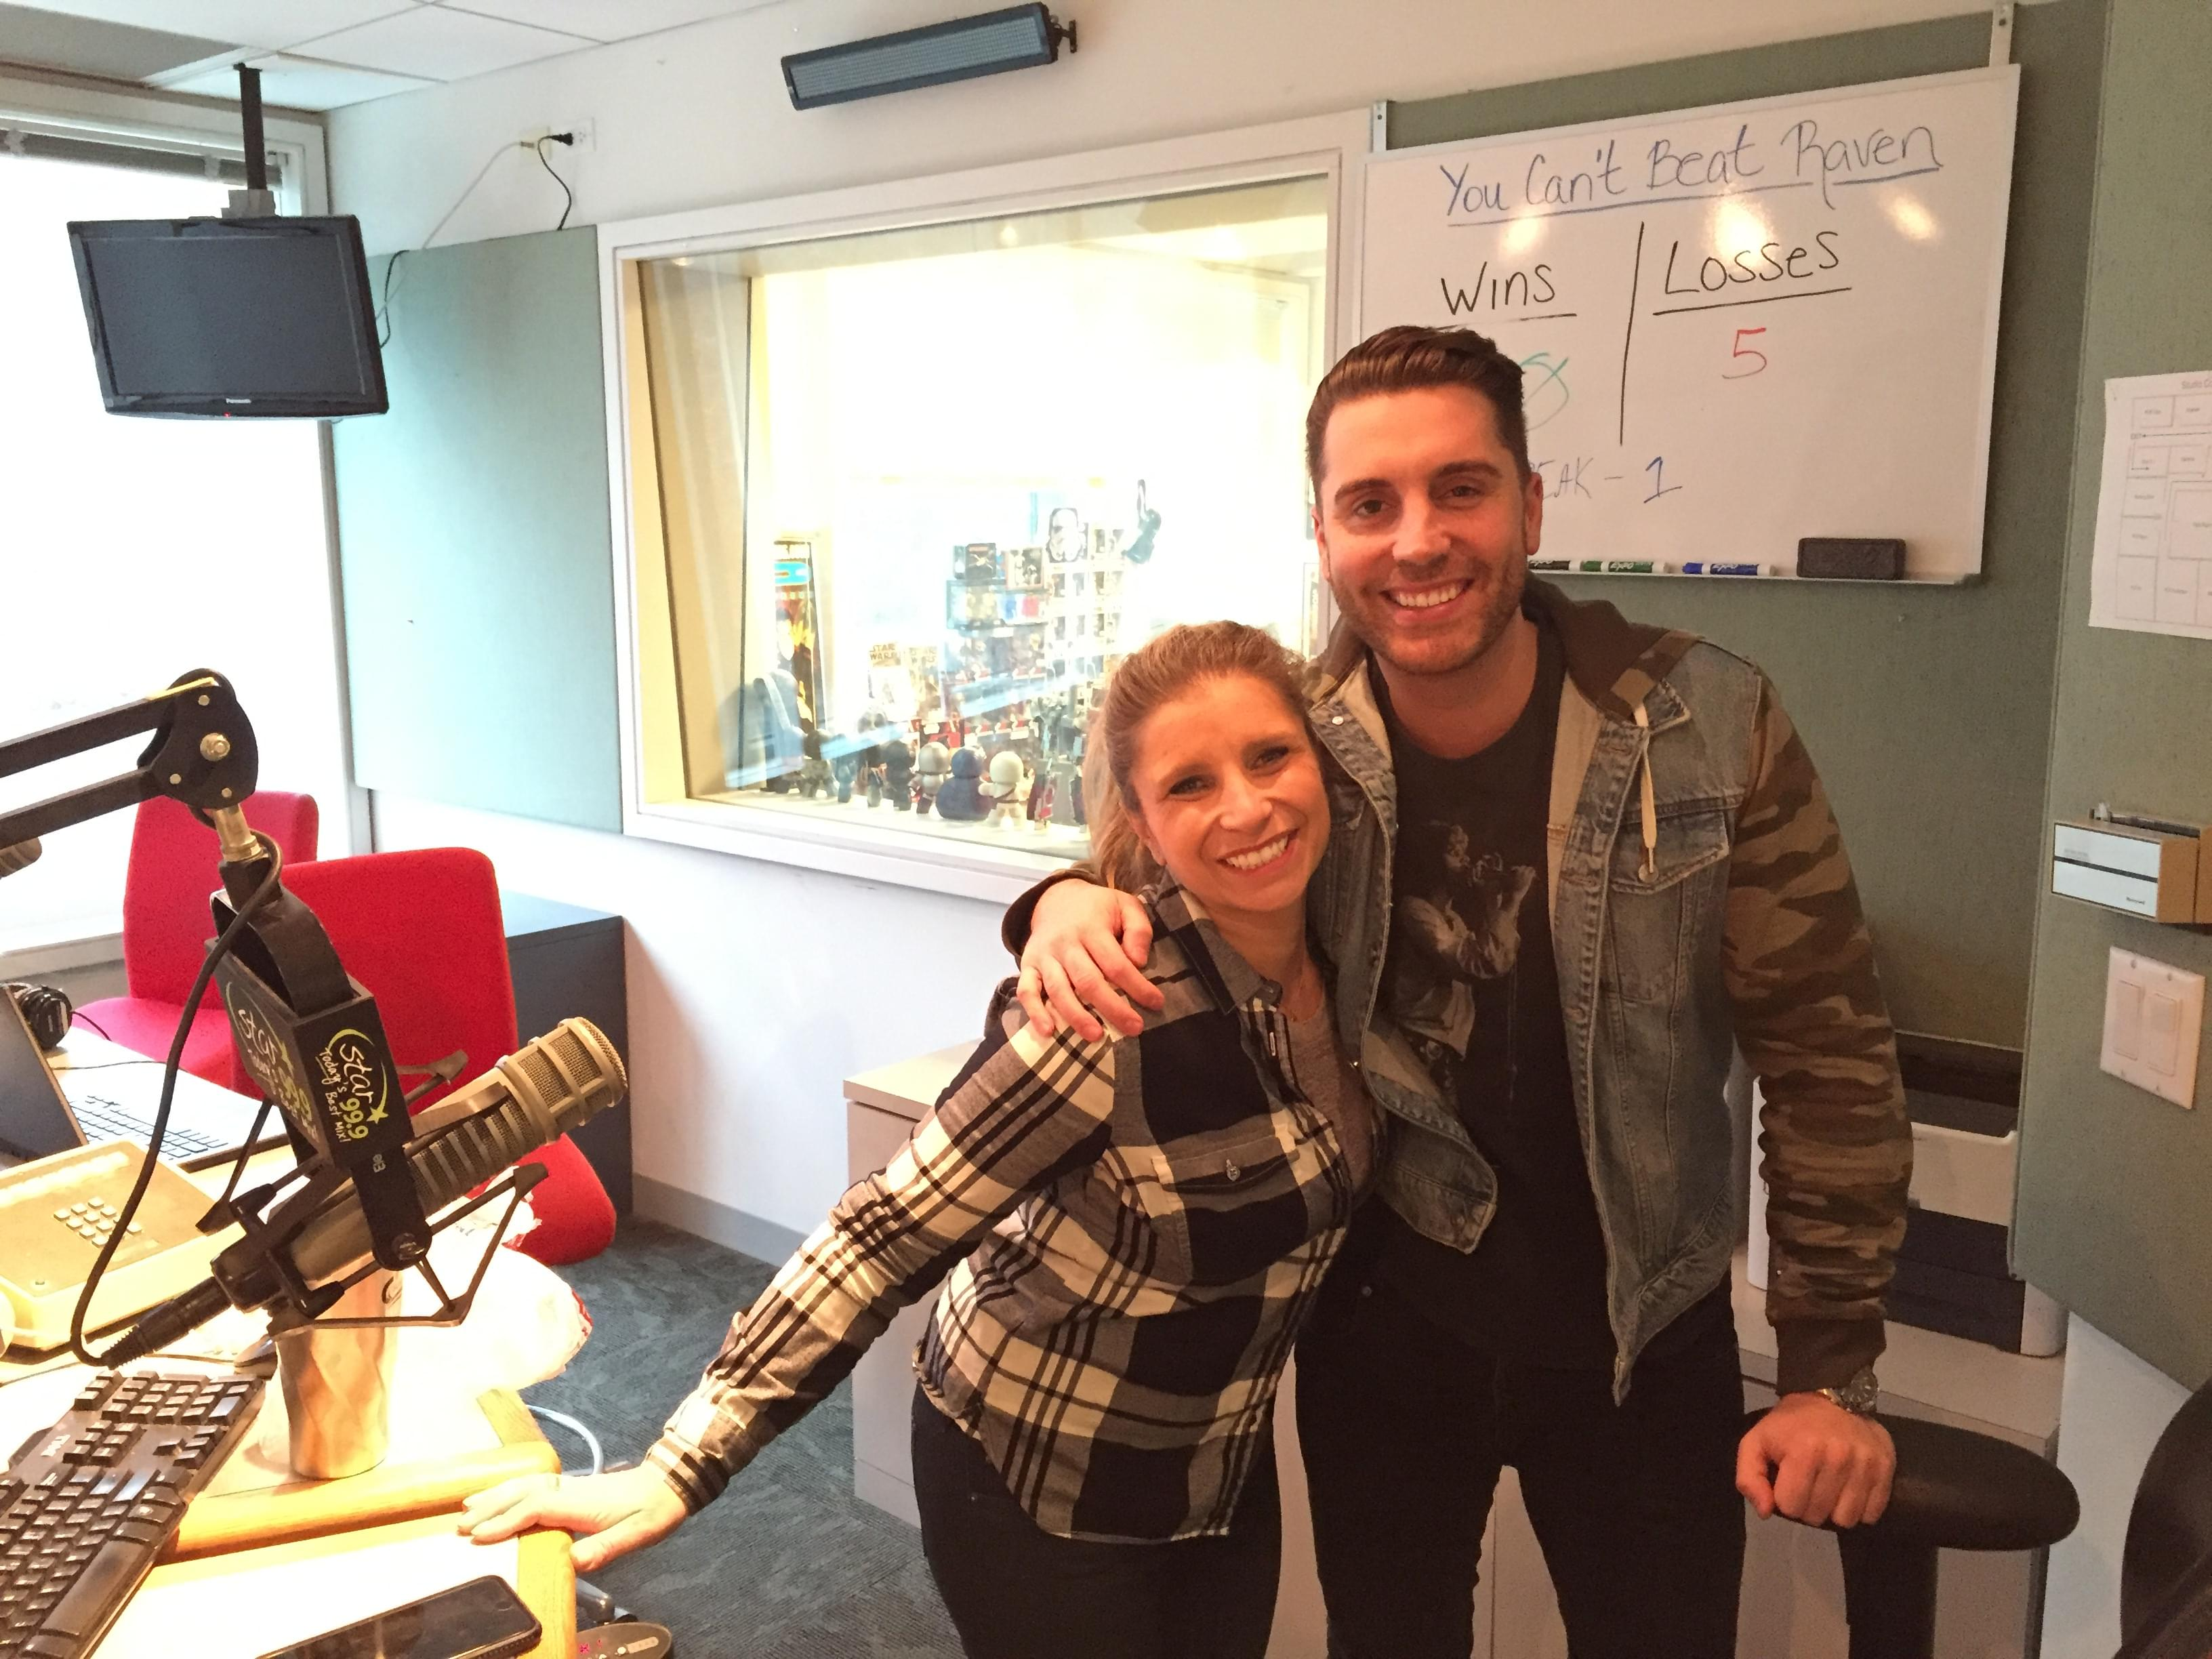 60 Seconds Behind the Scenes- How did Nick Fradiani like his full day of co-hosting?